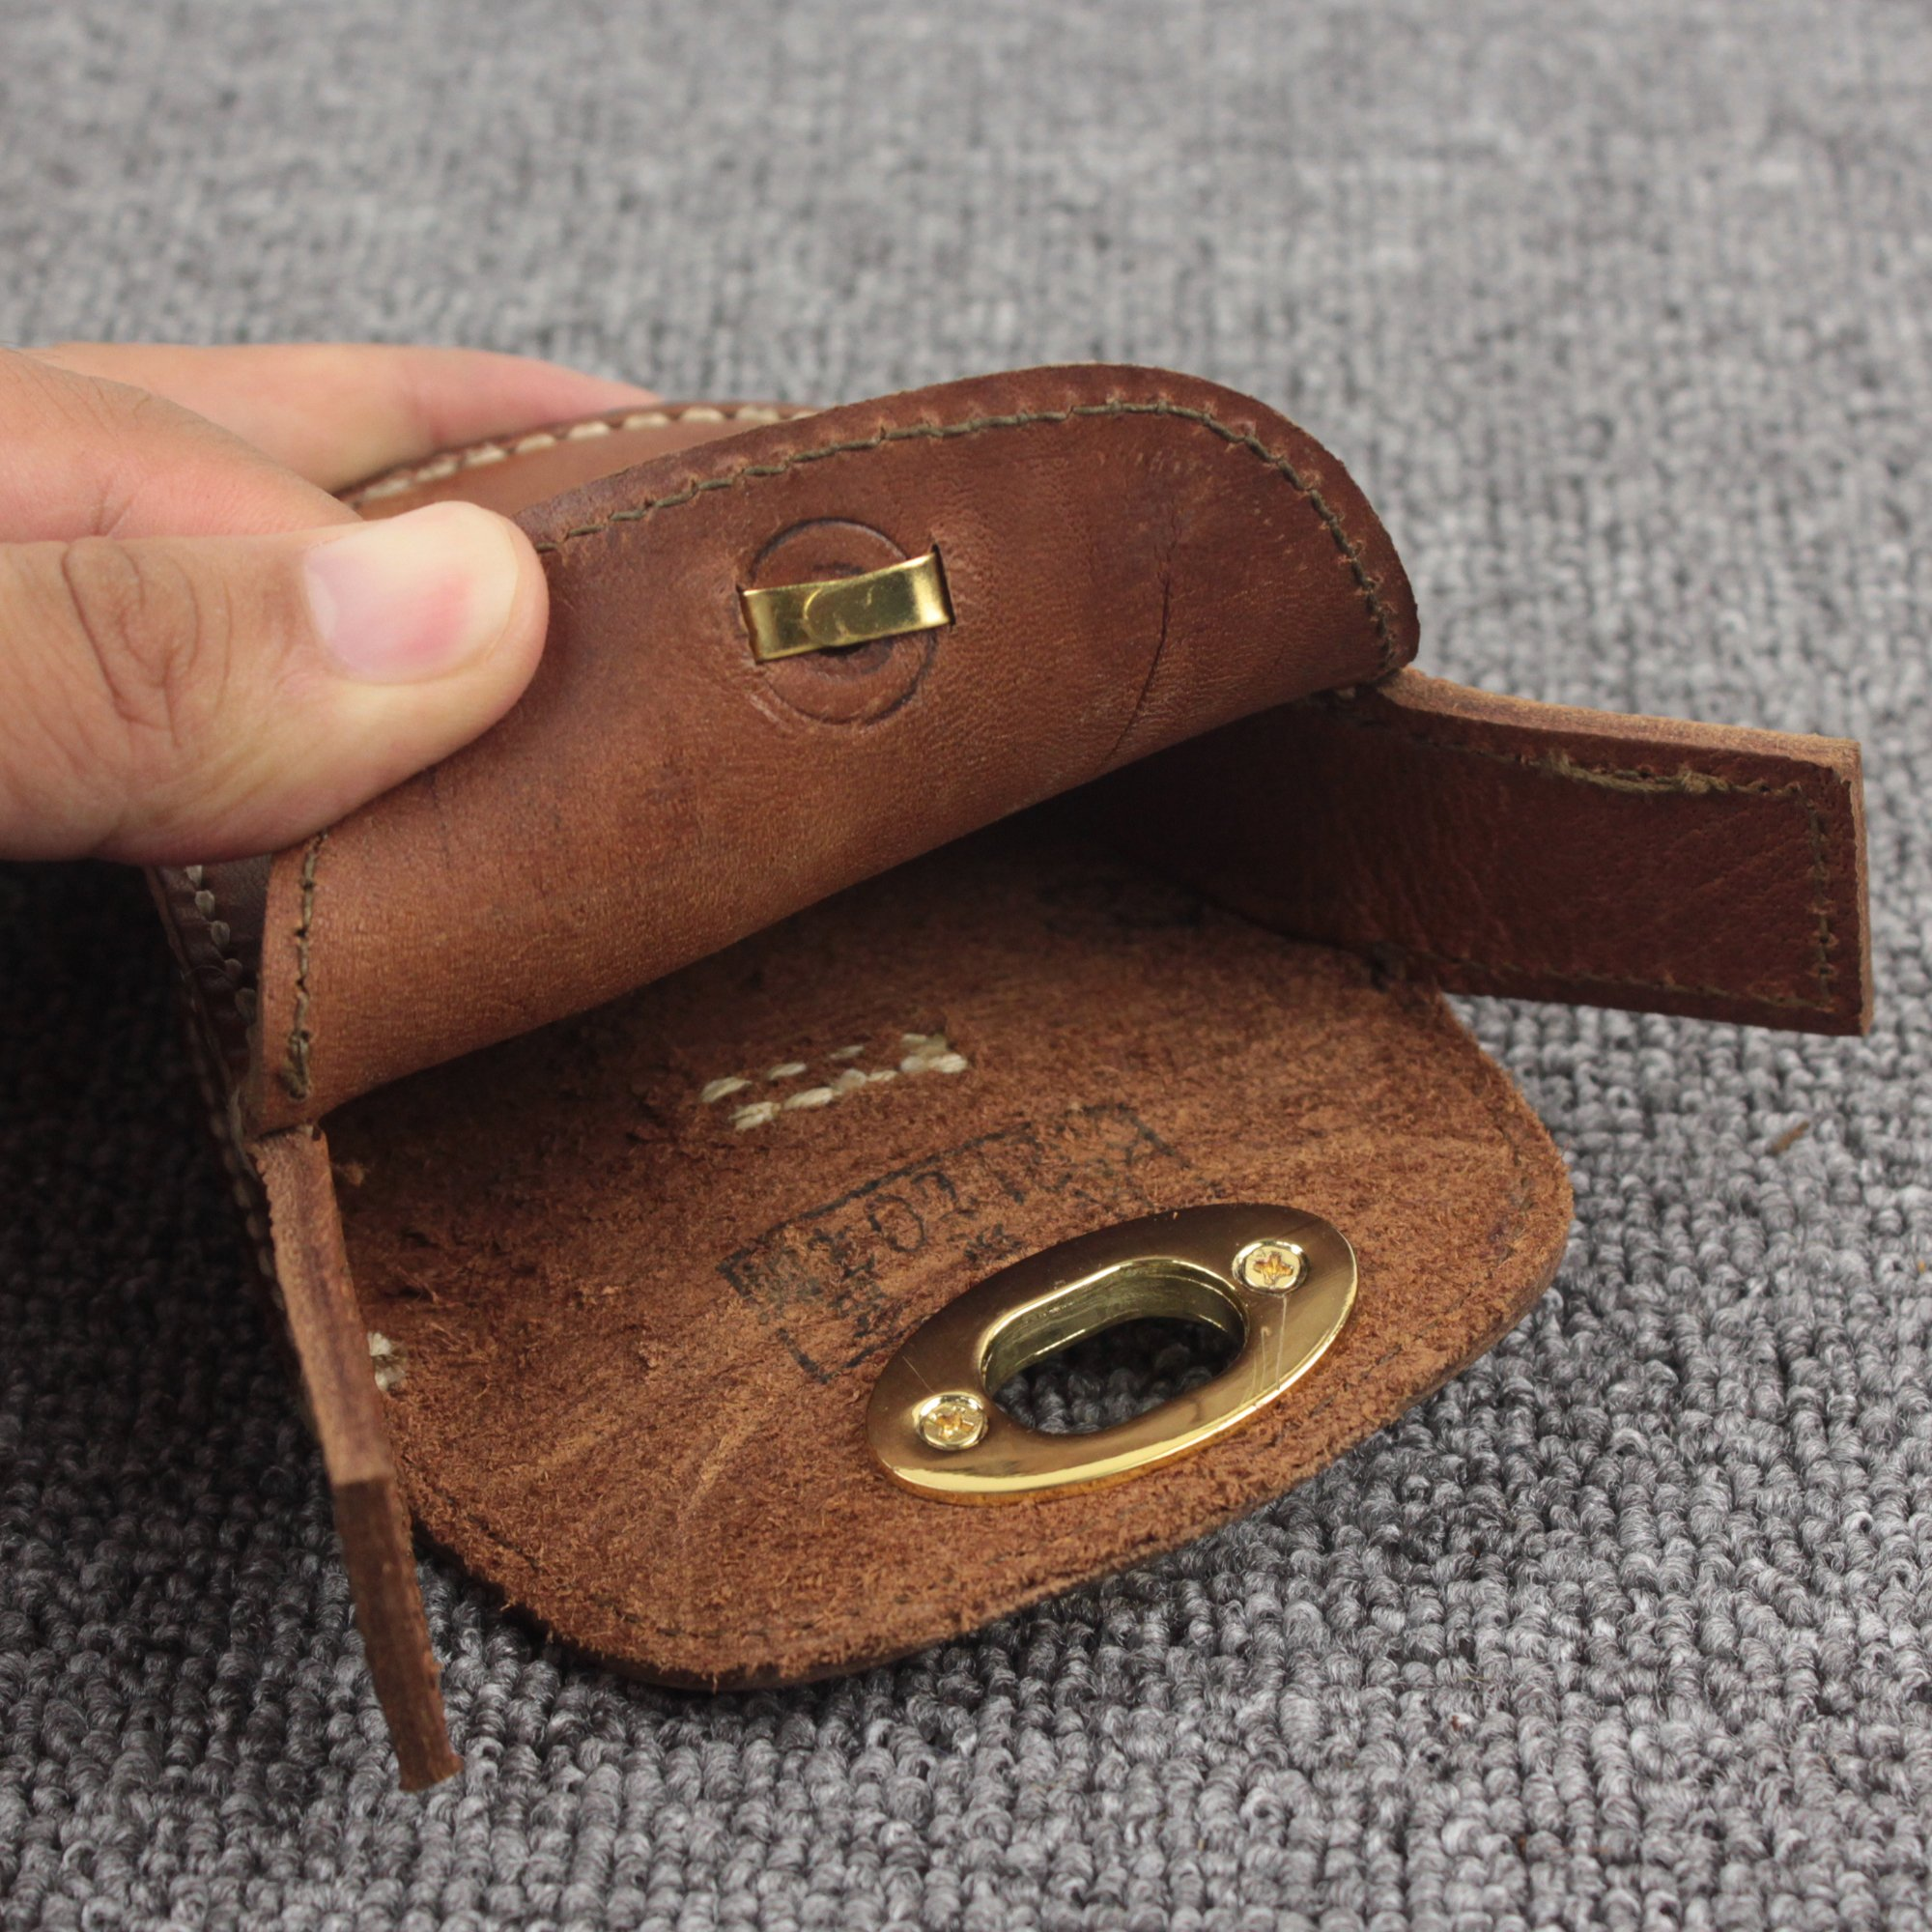 Thick Geninue Leather Handmade Pellets Ammo Storage Bag Pouch hunting outdoor by Unknown (Image #4)